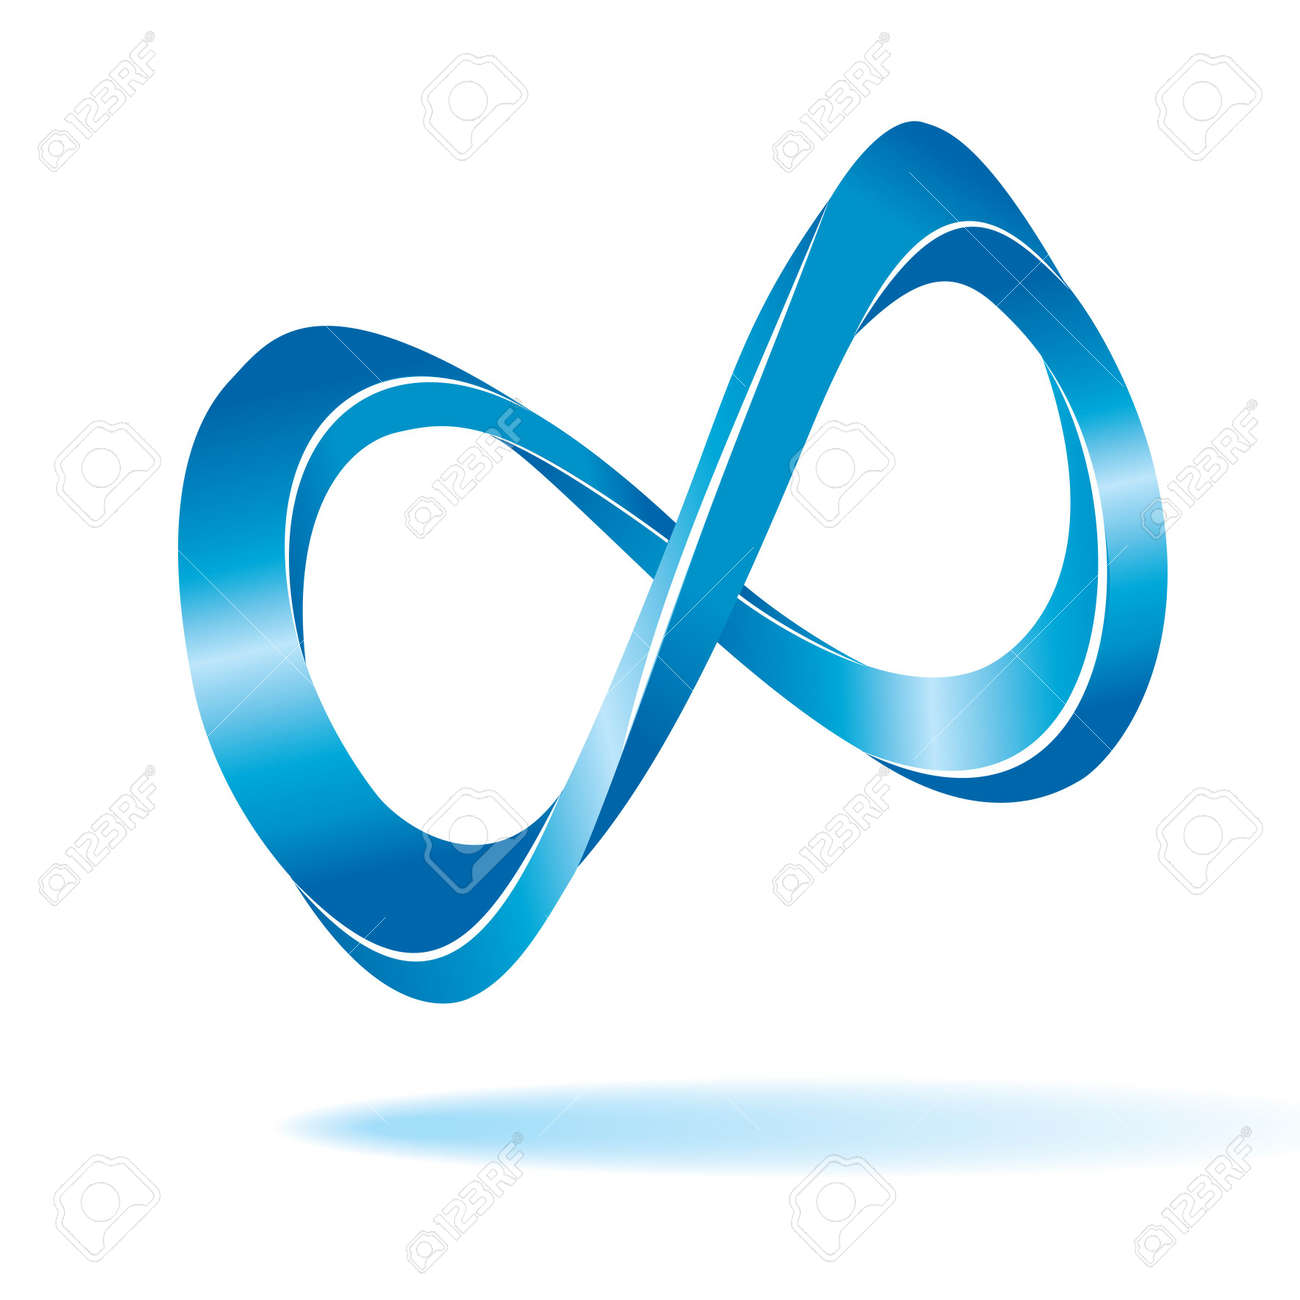 Blue infinity sign Stock Vector - 6762094